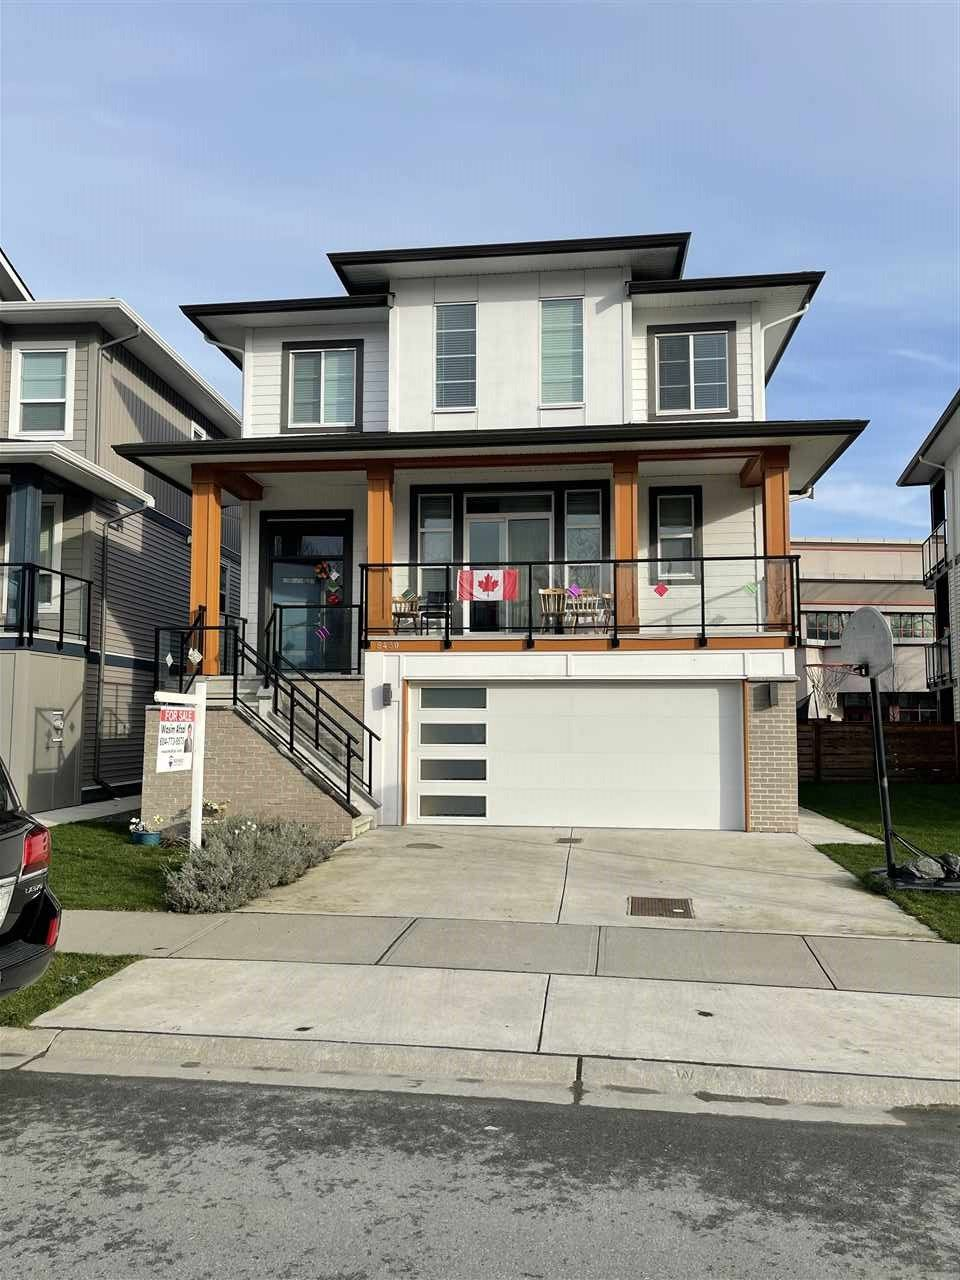 """Main Photo: 8430 MIDTOWN Way in Chilliwack: Chilliwack W Young-Well House for sale in """"Midtown 3"""" : MLS®# R2526737"""